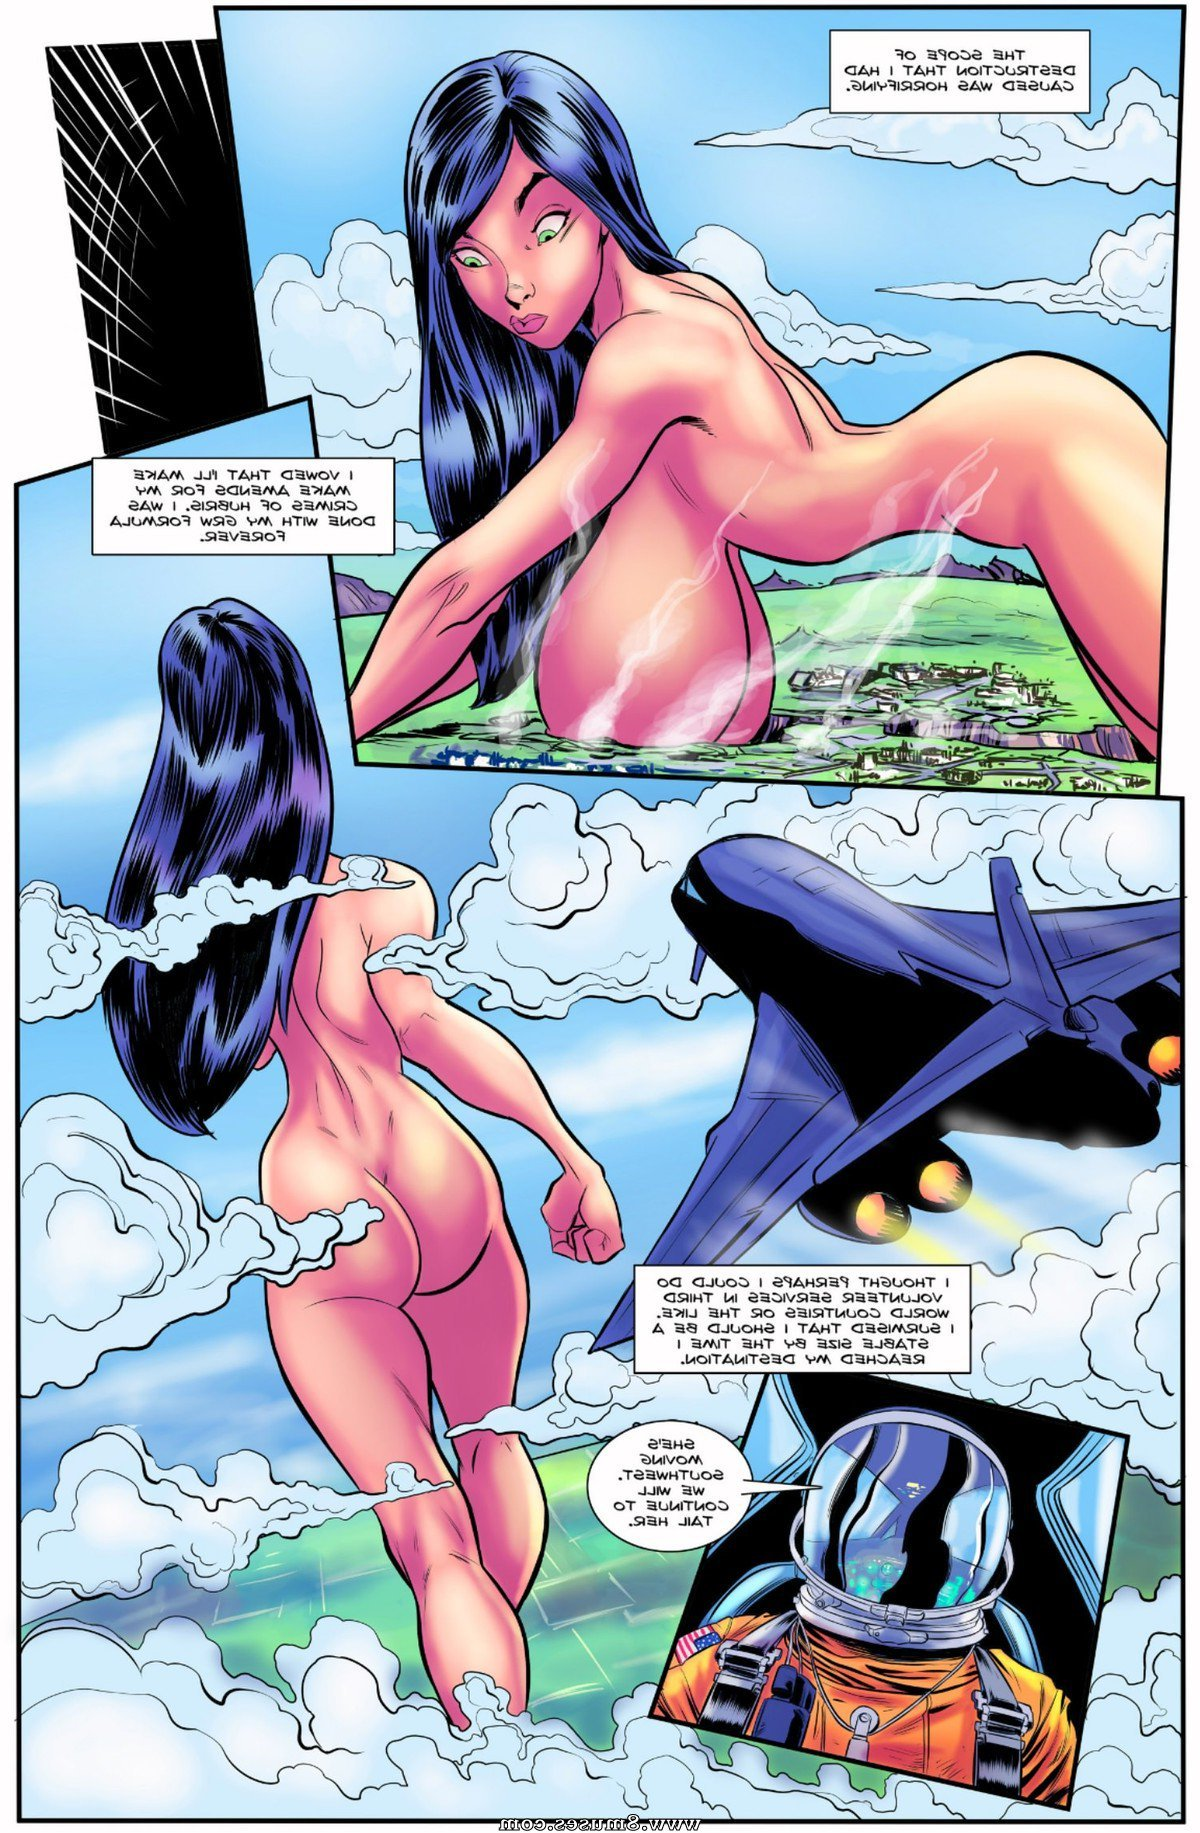 Giantess-Club-Comics/For-Science-2/Issue-1 For_Science_2_-_Issue_1_5.jpg